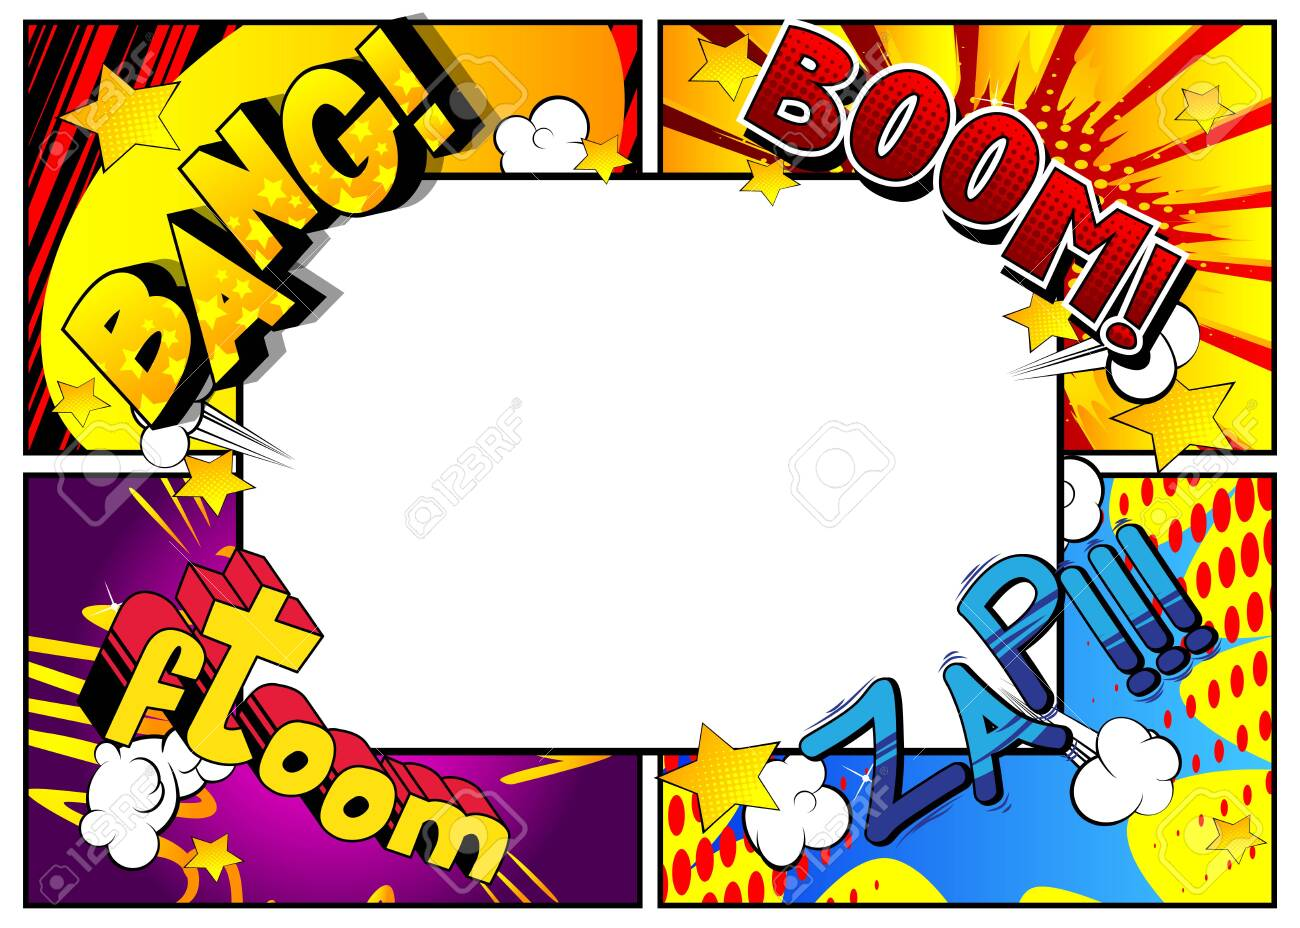 Vector pop-art style comic book page template background with explosions, halftone effects and rays. - 148806759